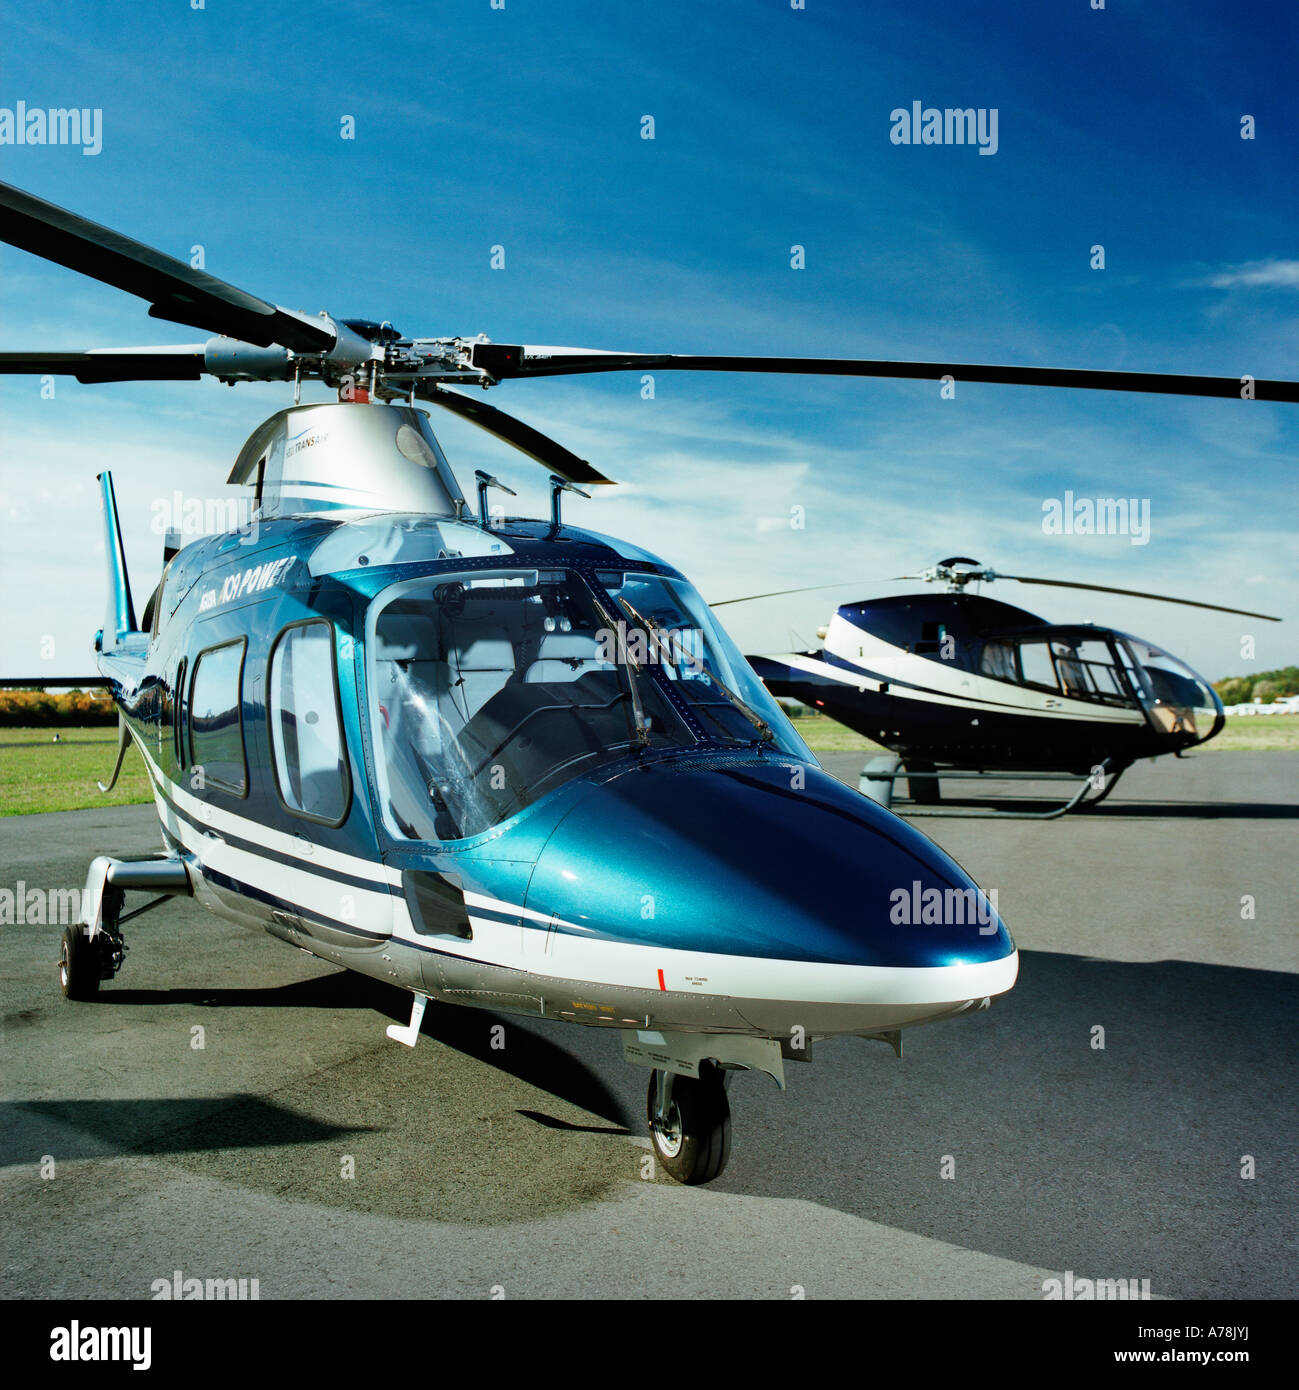 Two helicopters on manoeuvring area one Agusta A 109 E Power one Colibri  Eurocopter EC 120